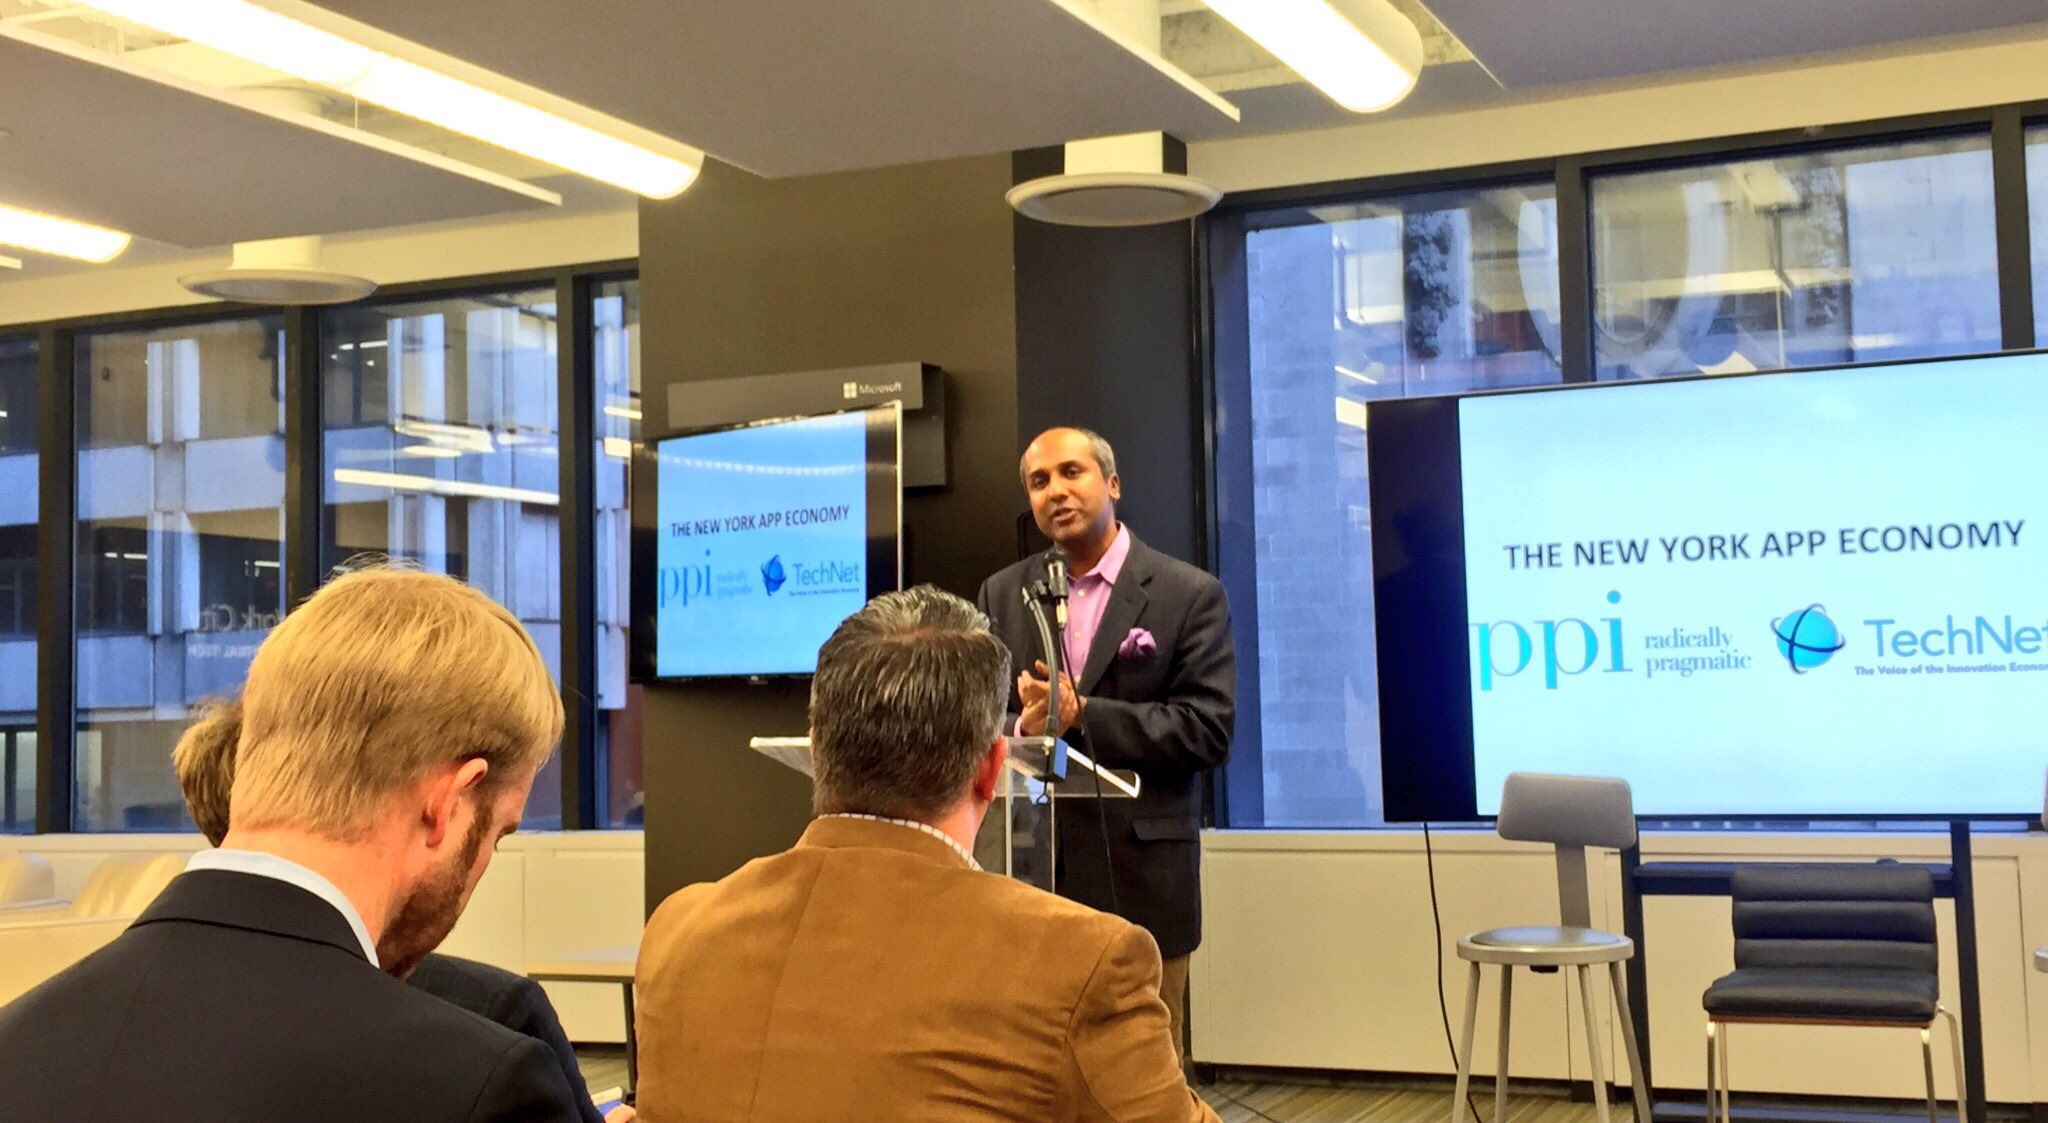 Thanks for the shoutout, @Sree! @MicrosoftNY is excited to continue helping to make The Greatest City In The World™ even better. #AppEconomy https://t.co/y6R1giyPae